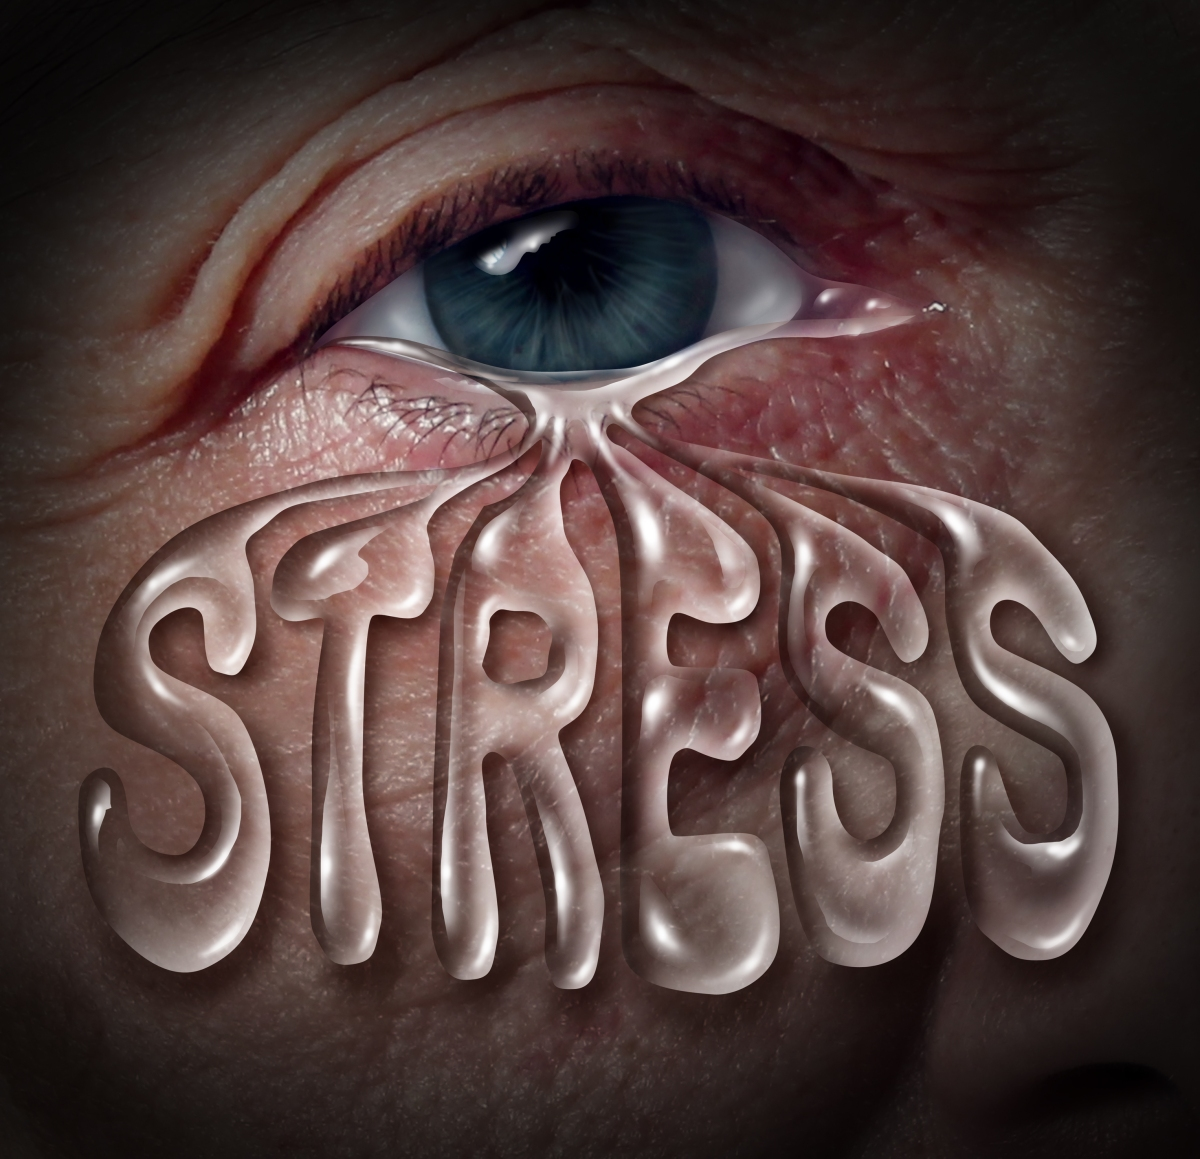 STRESS: A STATE OF MIND